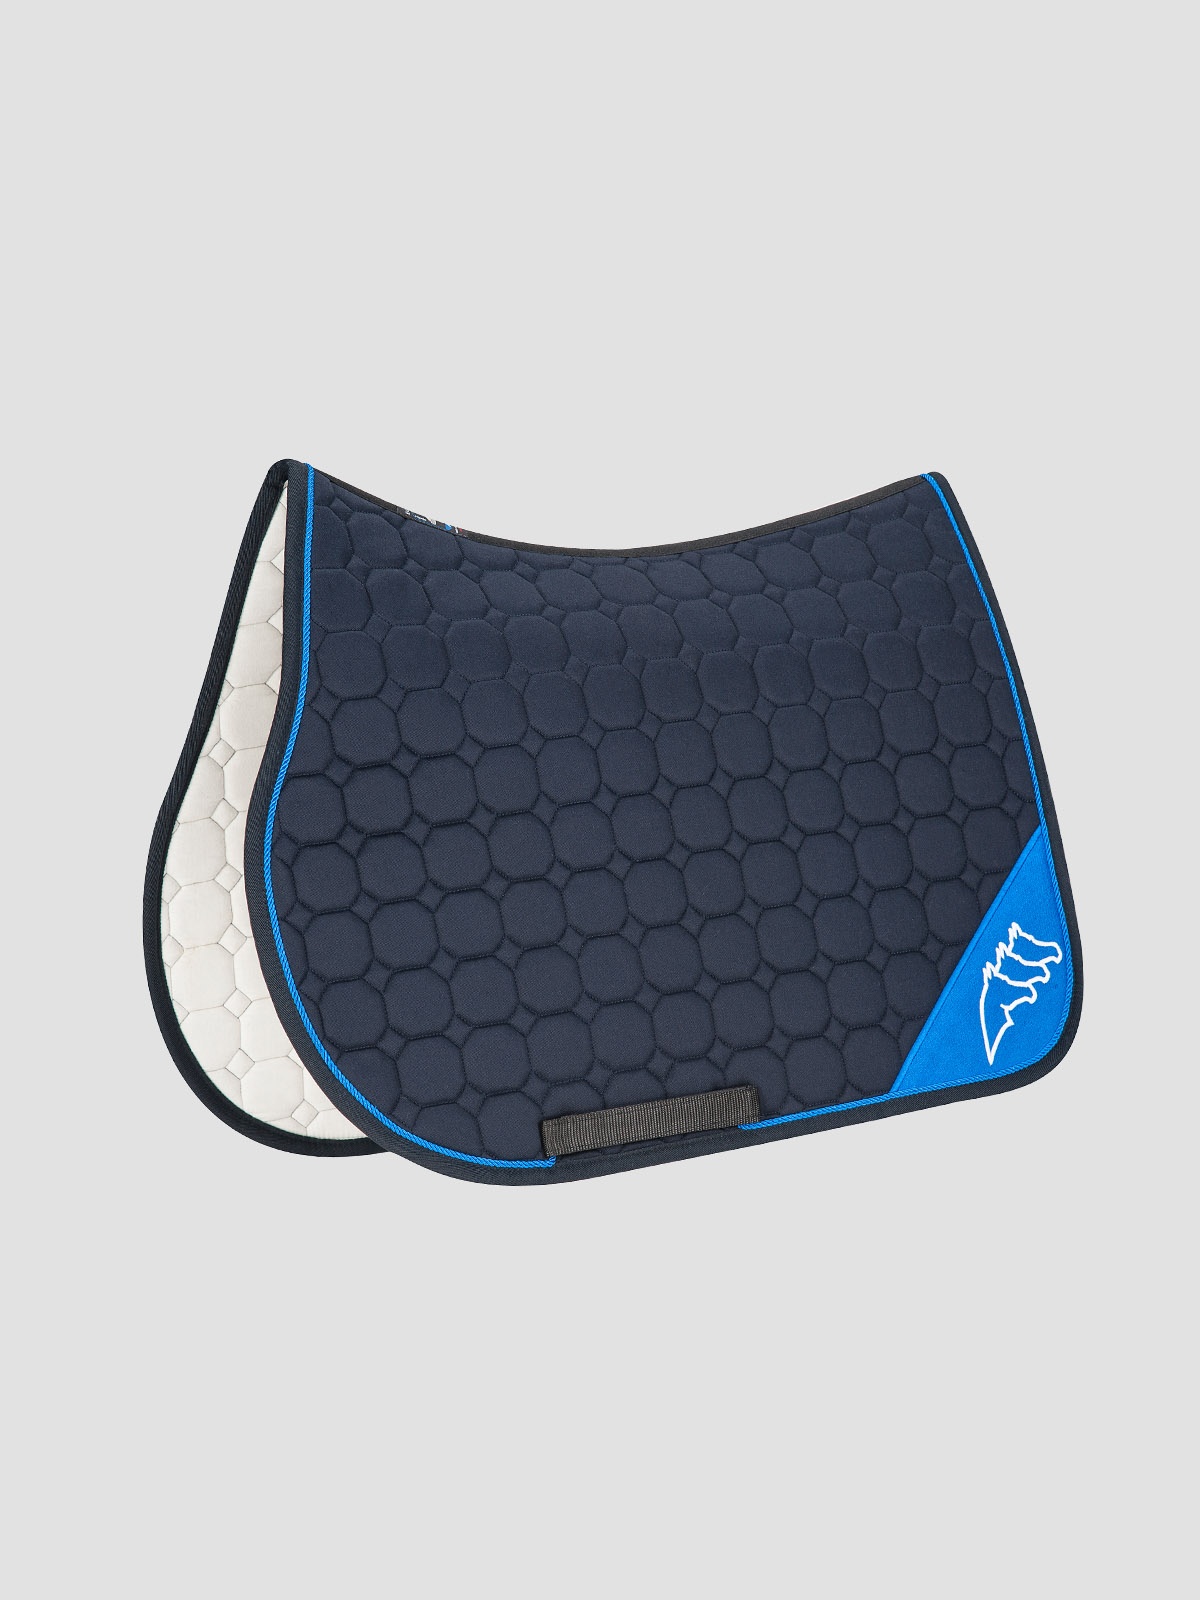 NADIR - Octagon Saddle Pad with Contrast Equiline Logo 6